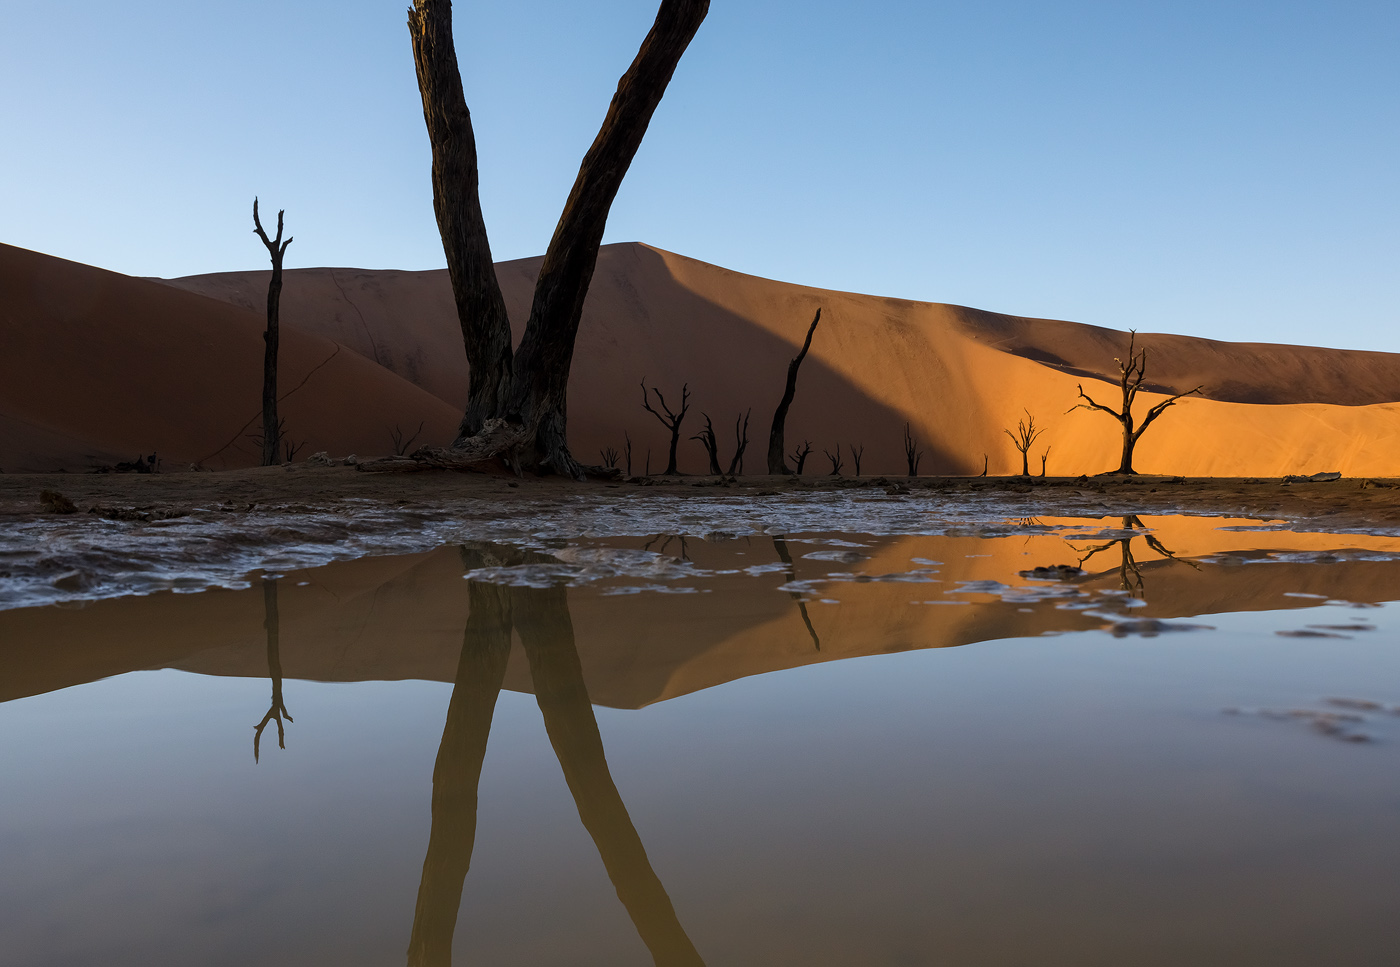 The dead camel thorn trees of Deadvlei reflecting in rainwater. The puddle was actually tiny, and to get the image to look like this I had to shoot at water level, getting mud all over the bottom of my camera.